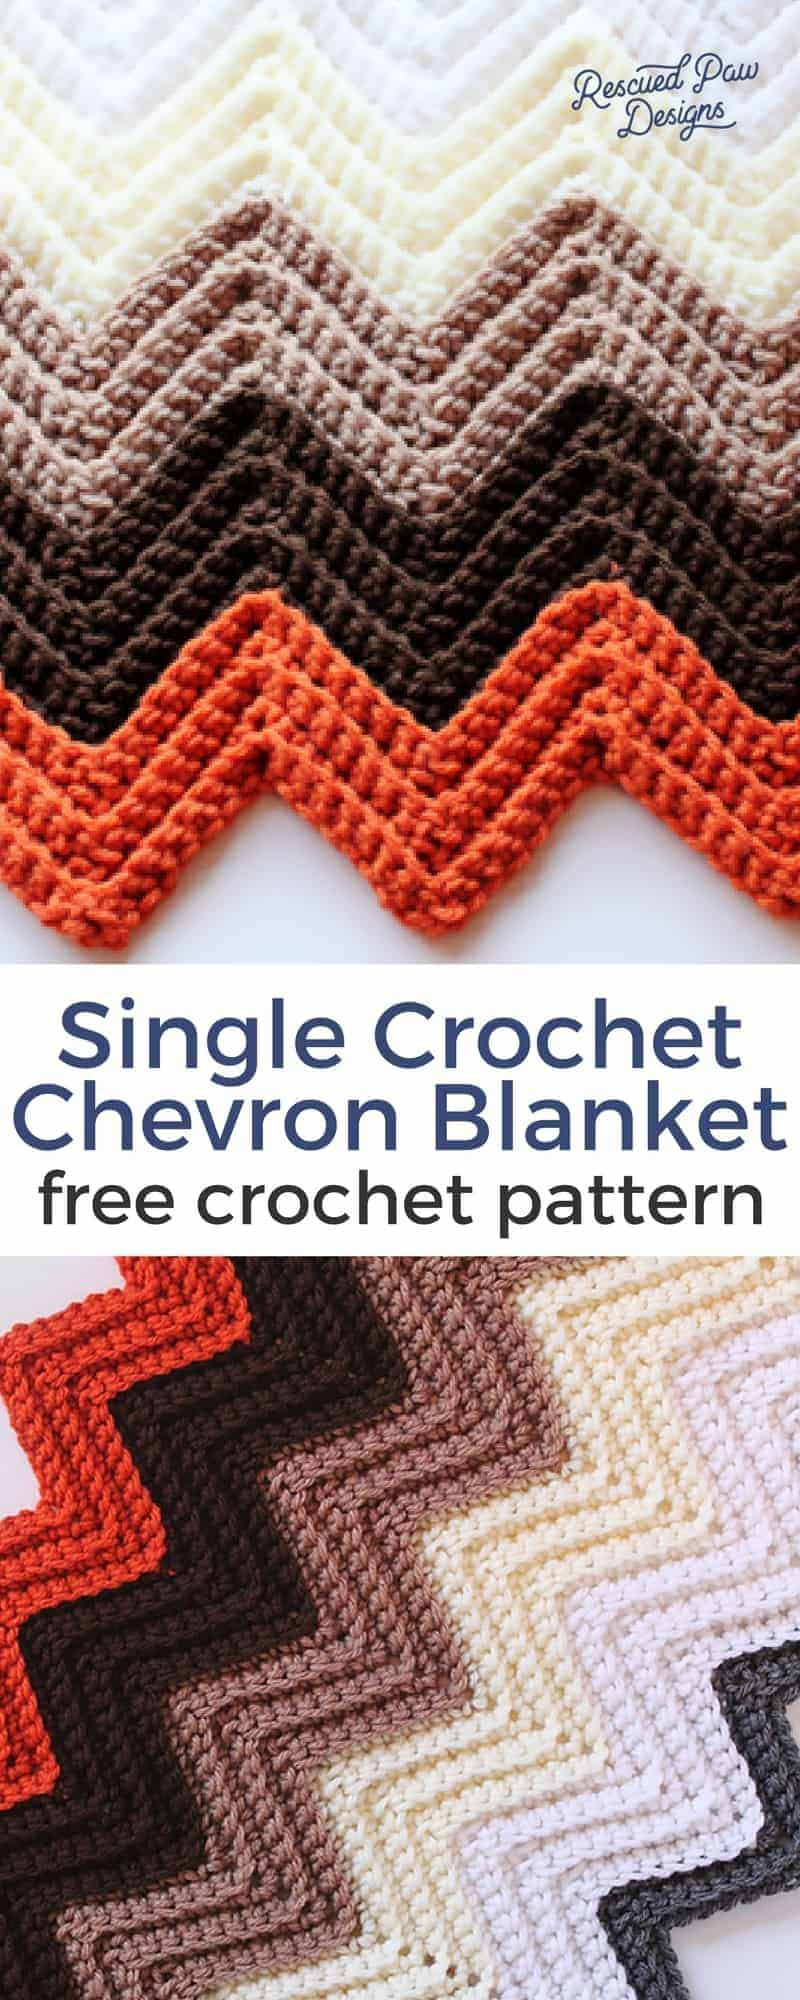 30 Days to Pay! Blossom Street Collection #1  9 Designs Crochet//Knit Pattern